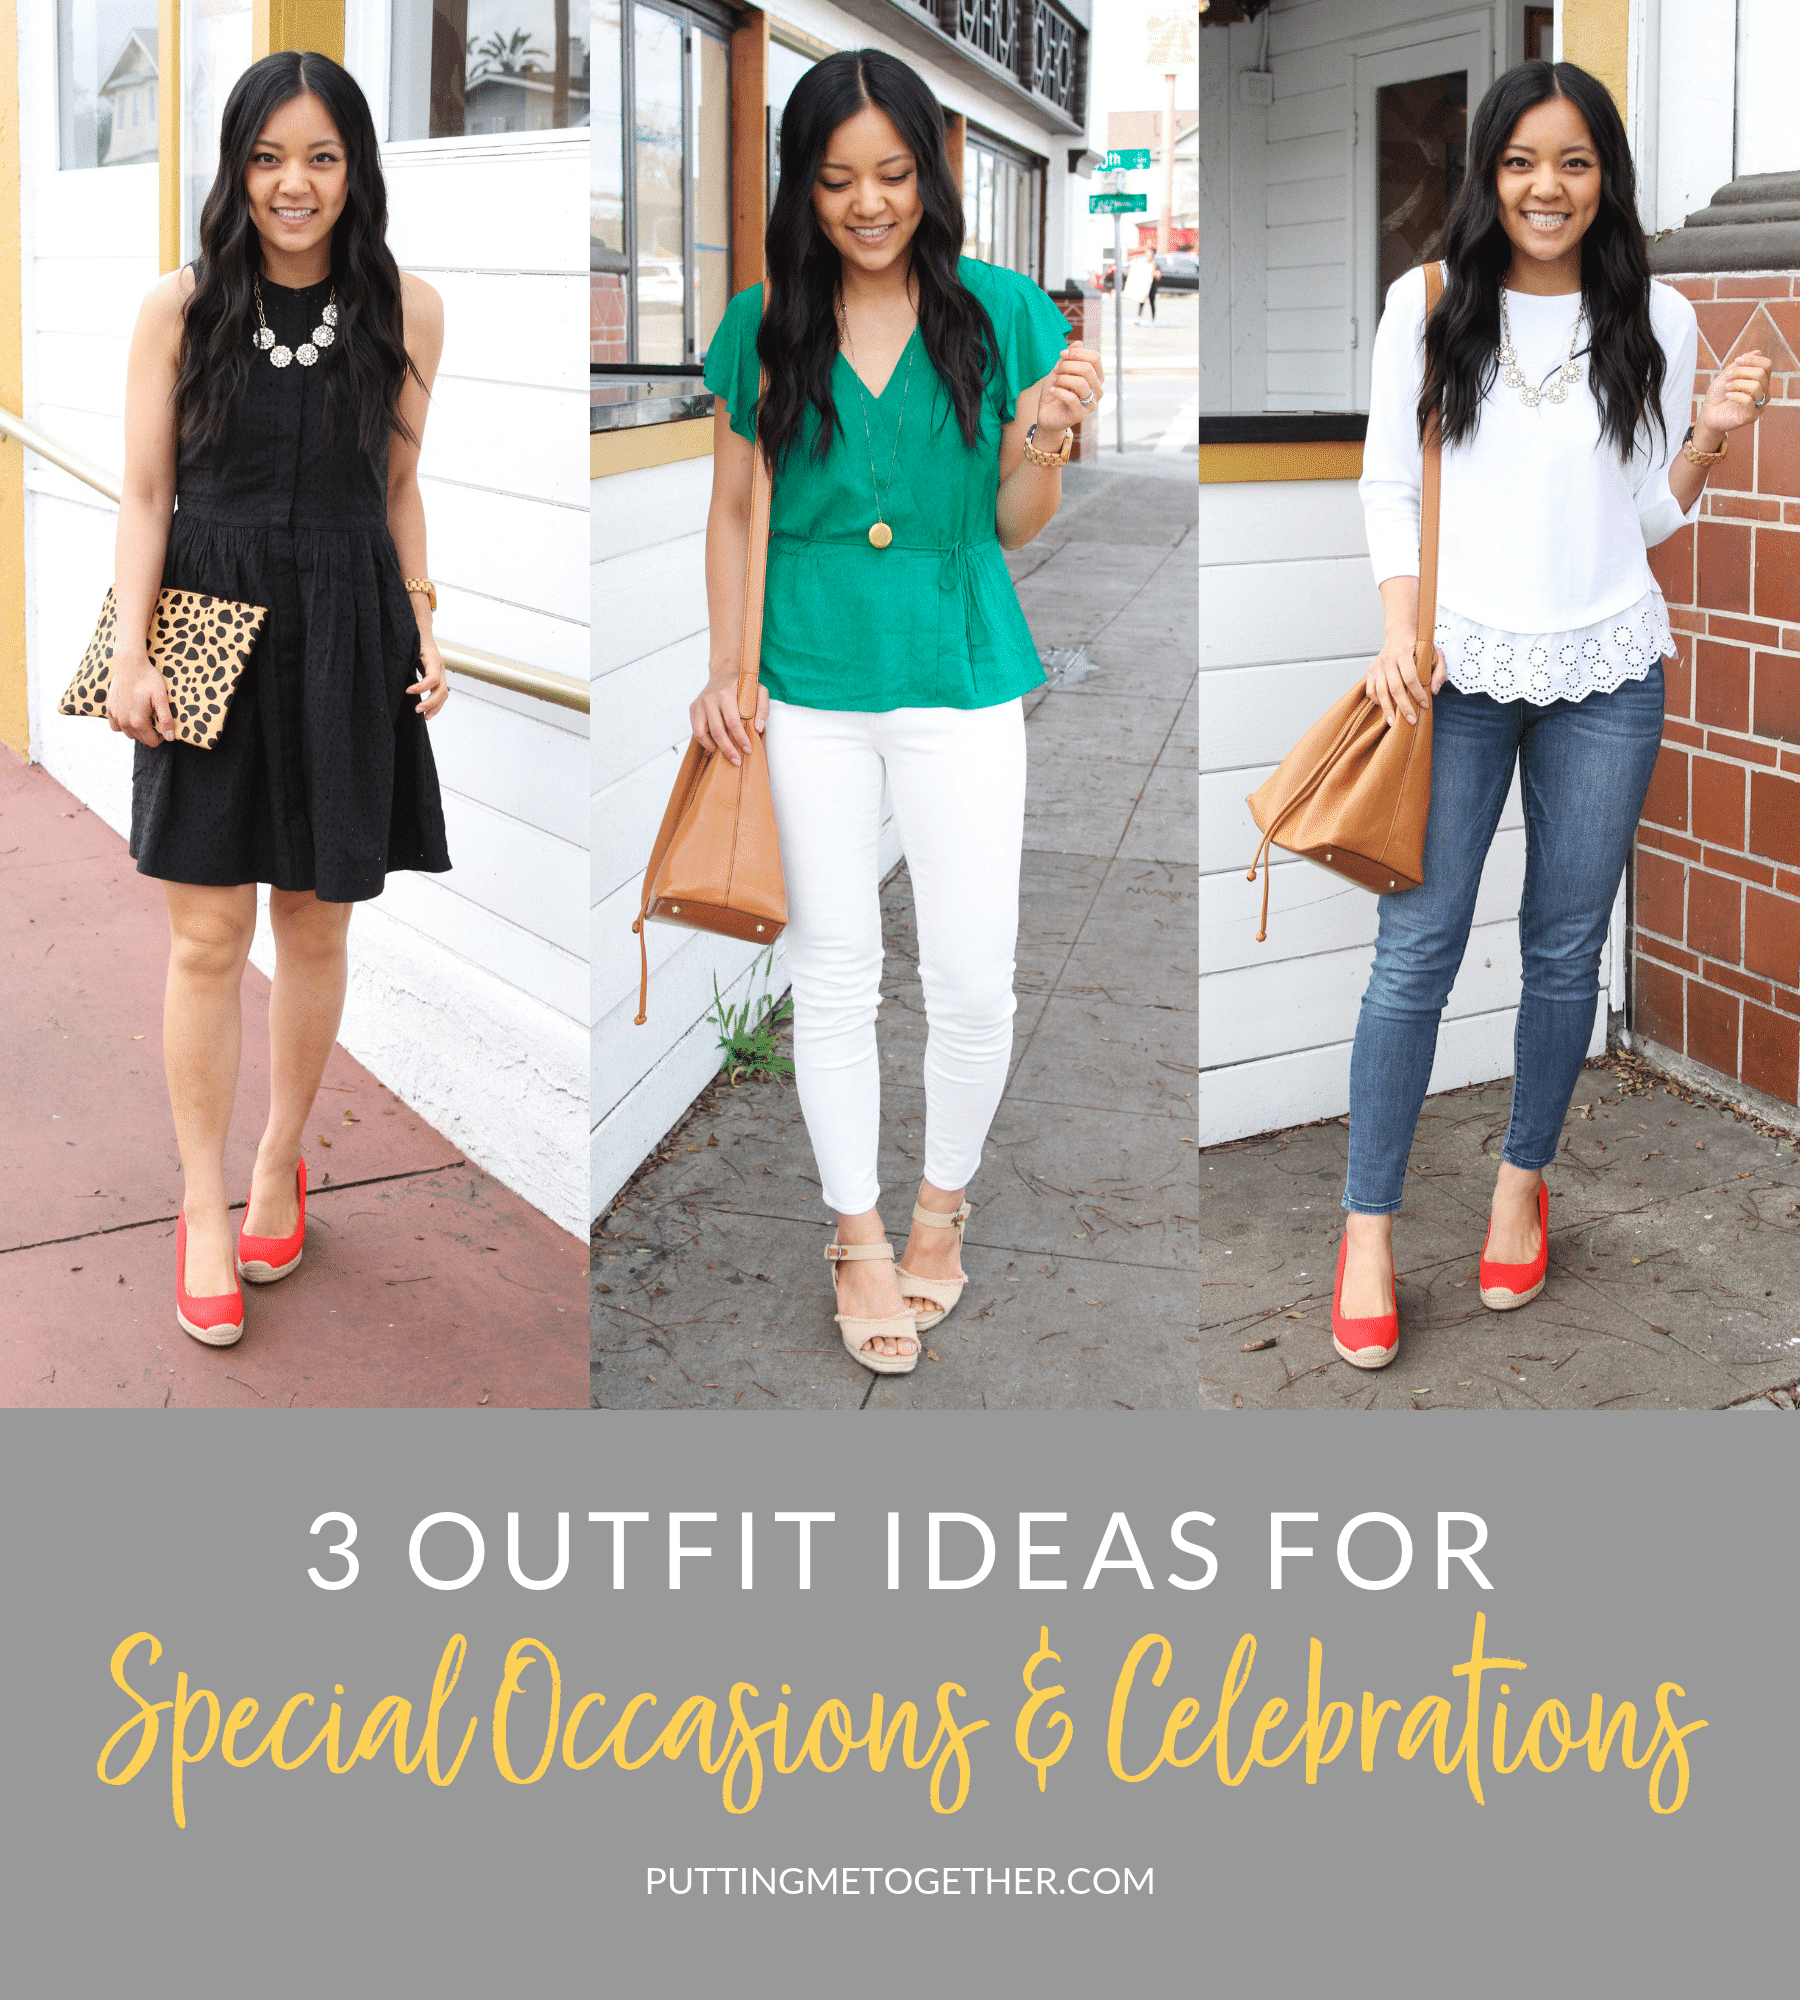 3 Outfit Ideas for Special Occasions